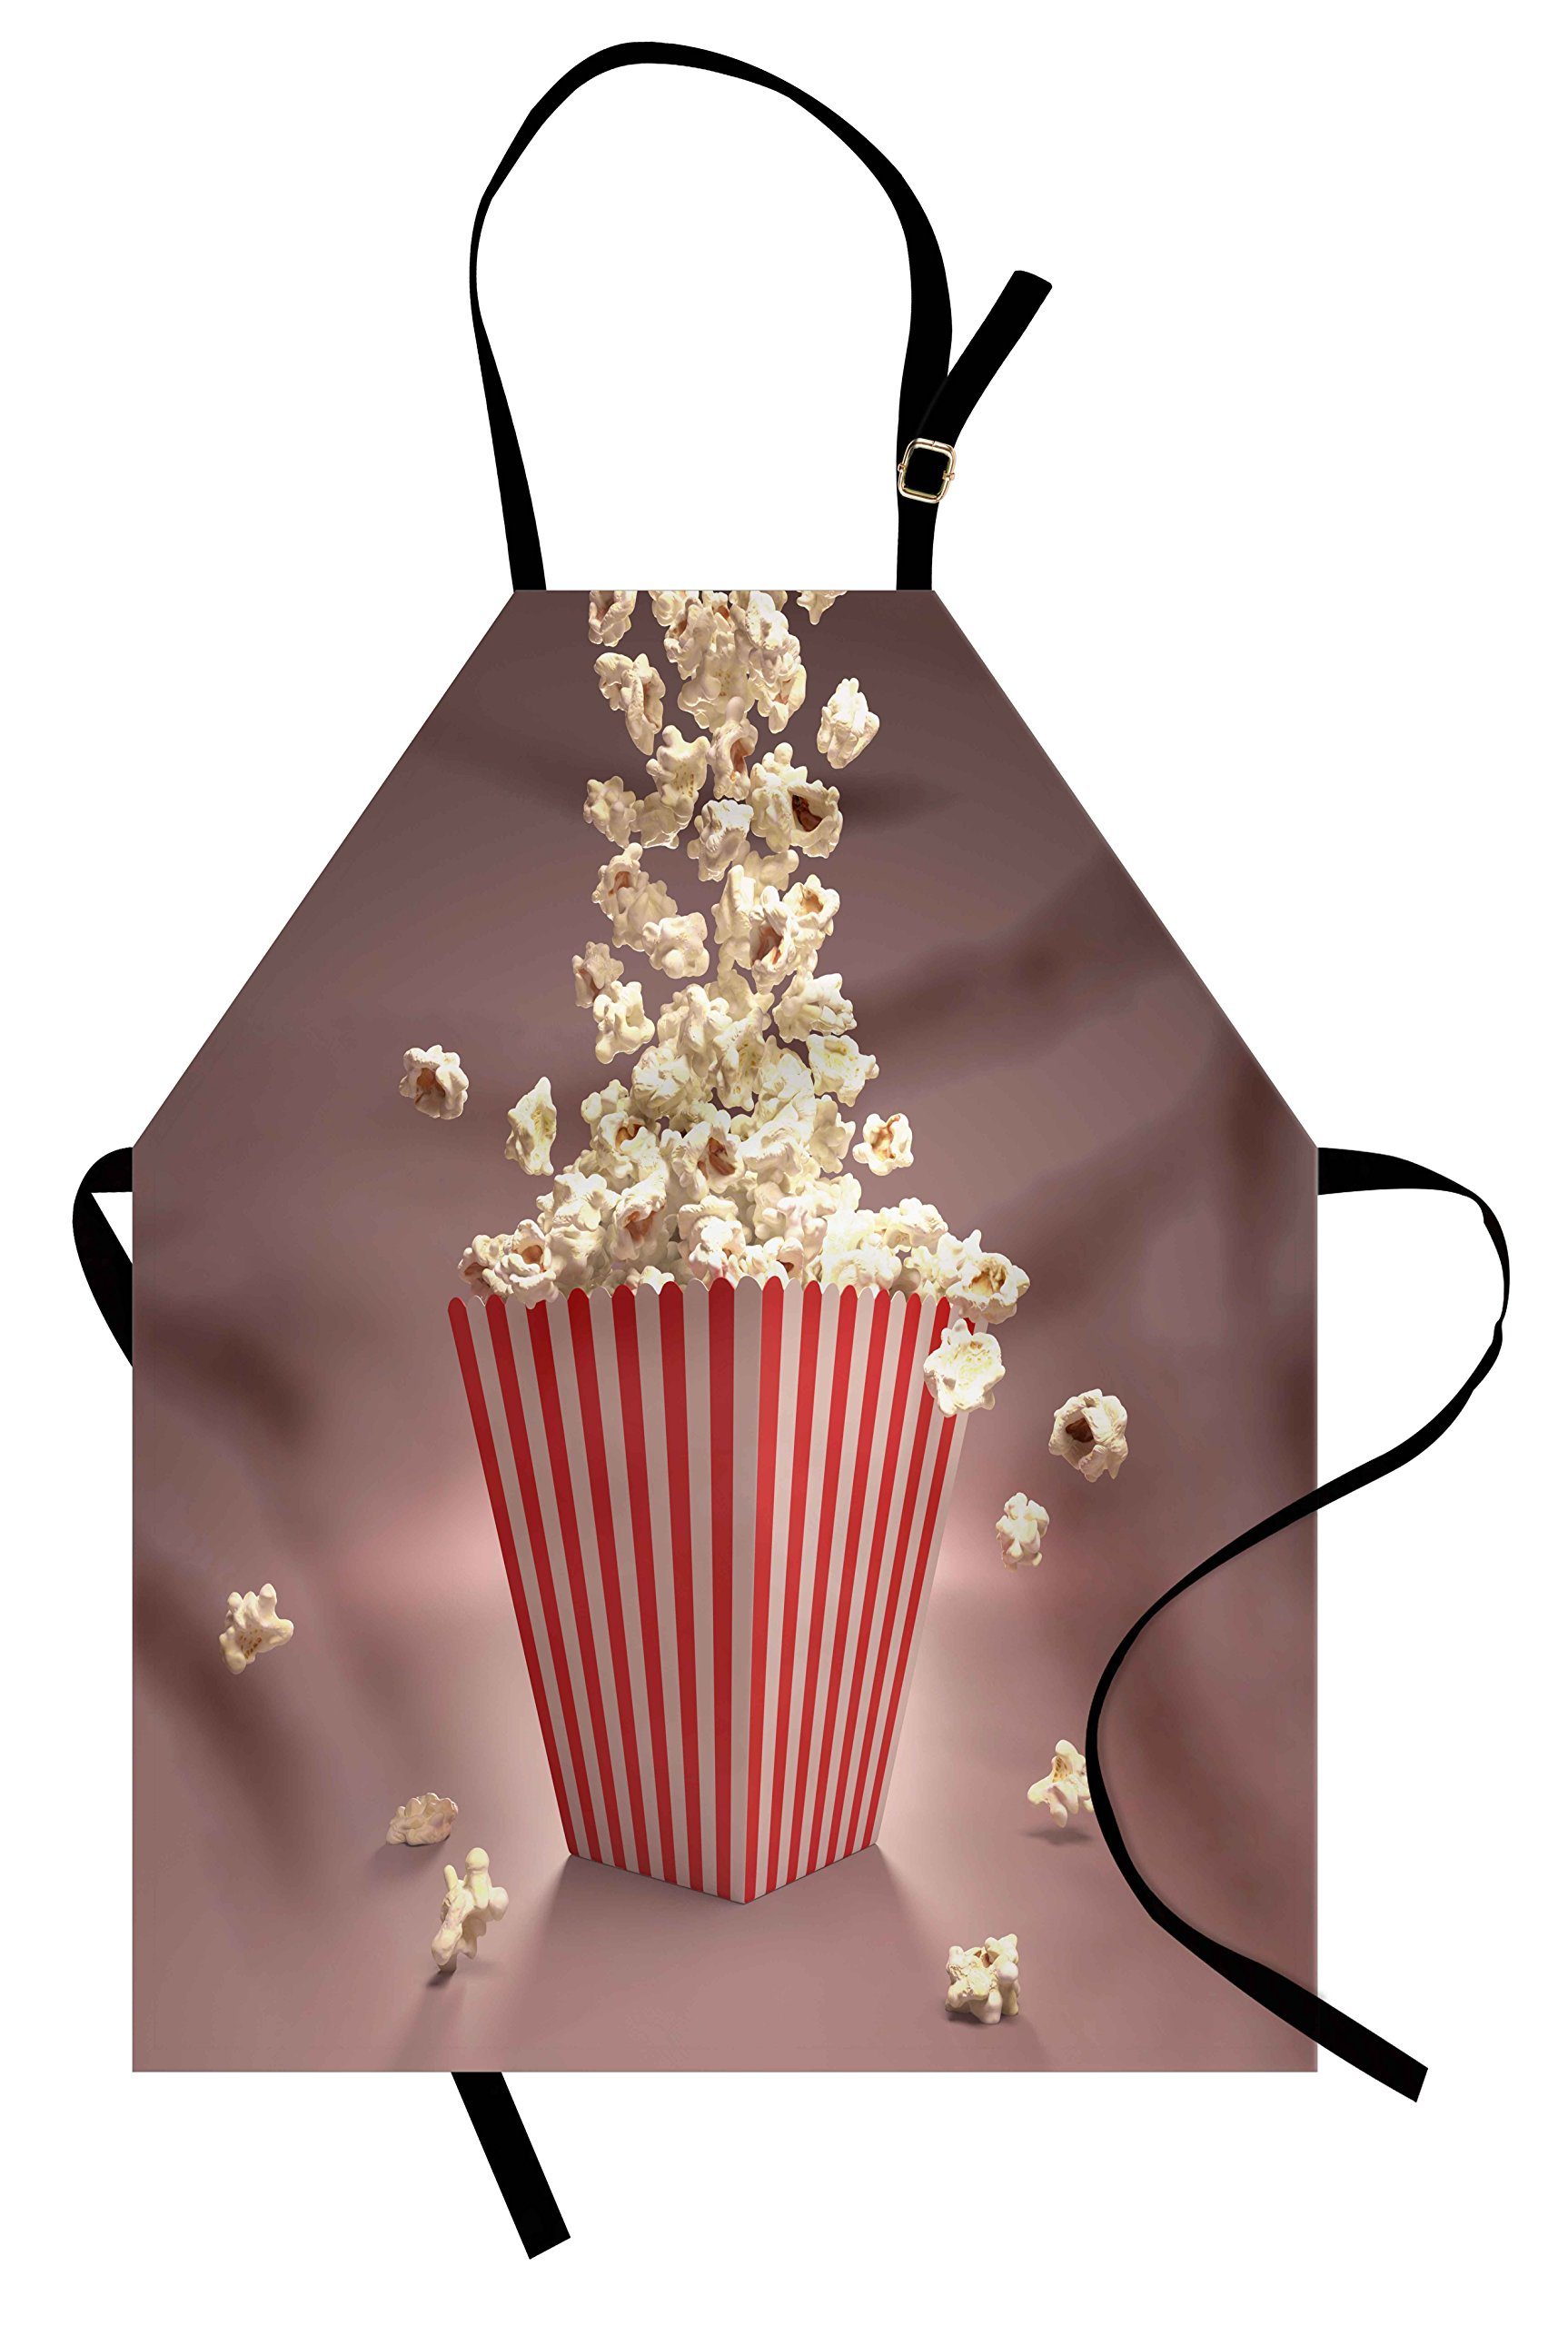 Lunarable Retro Apron, Retro Style Popcorn Art Image Cinema Movie Theater Theme in Classical Display, Unisex Kitchen Bib Apron with Adjustable Neck for Cooking Baking Gardening, Pale Red White